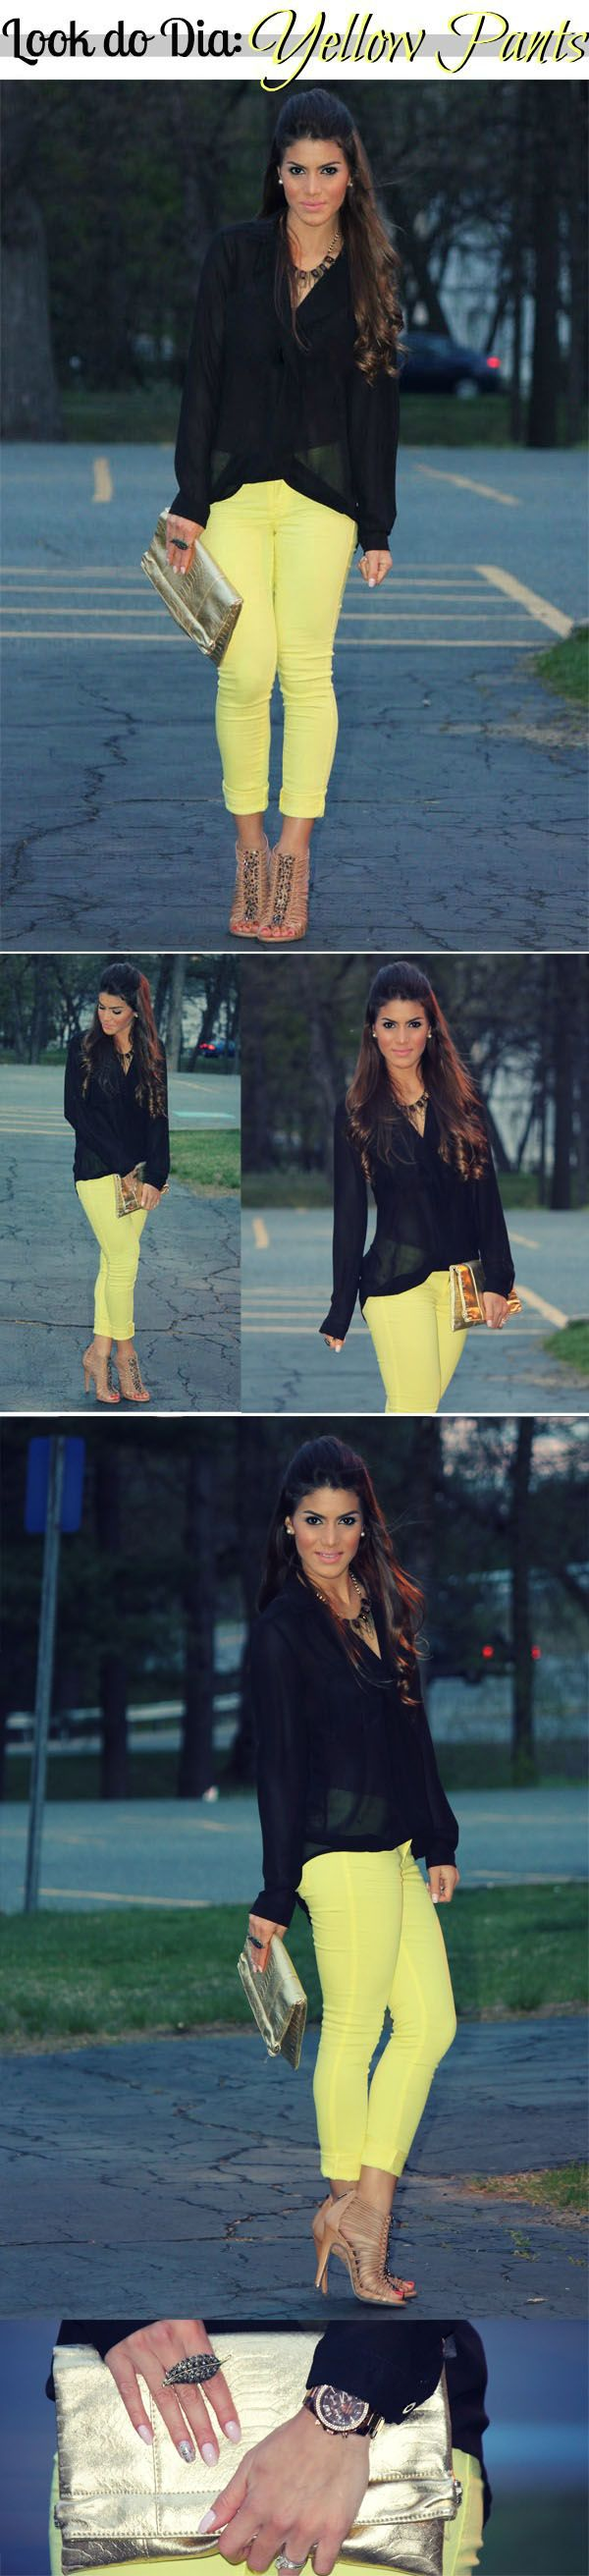 Black and yellow...